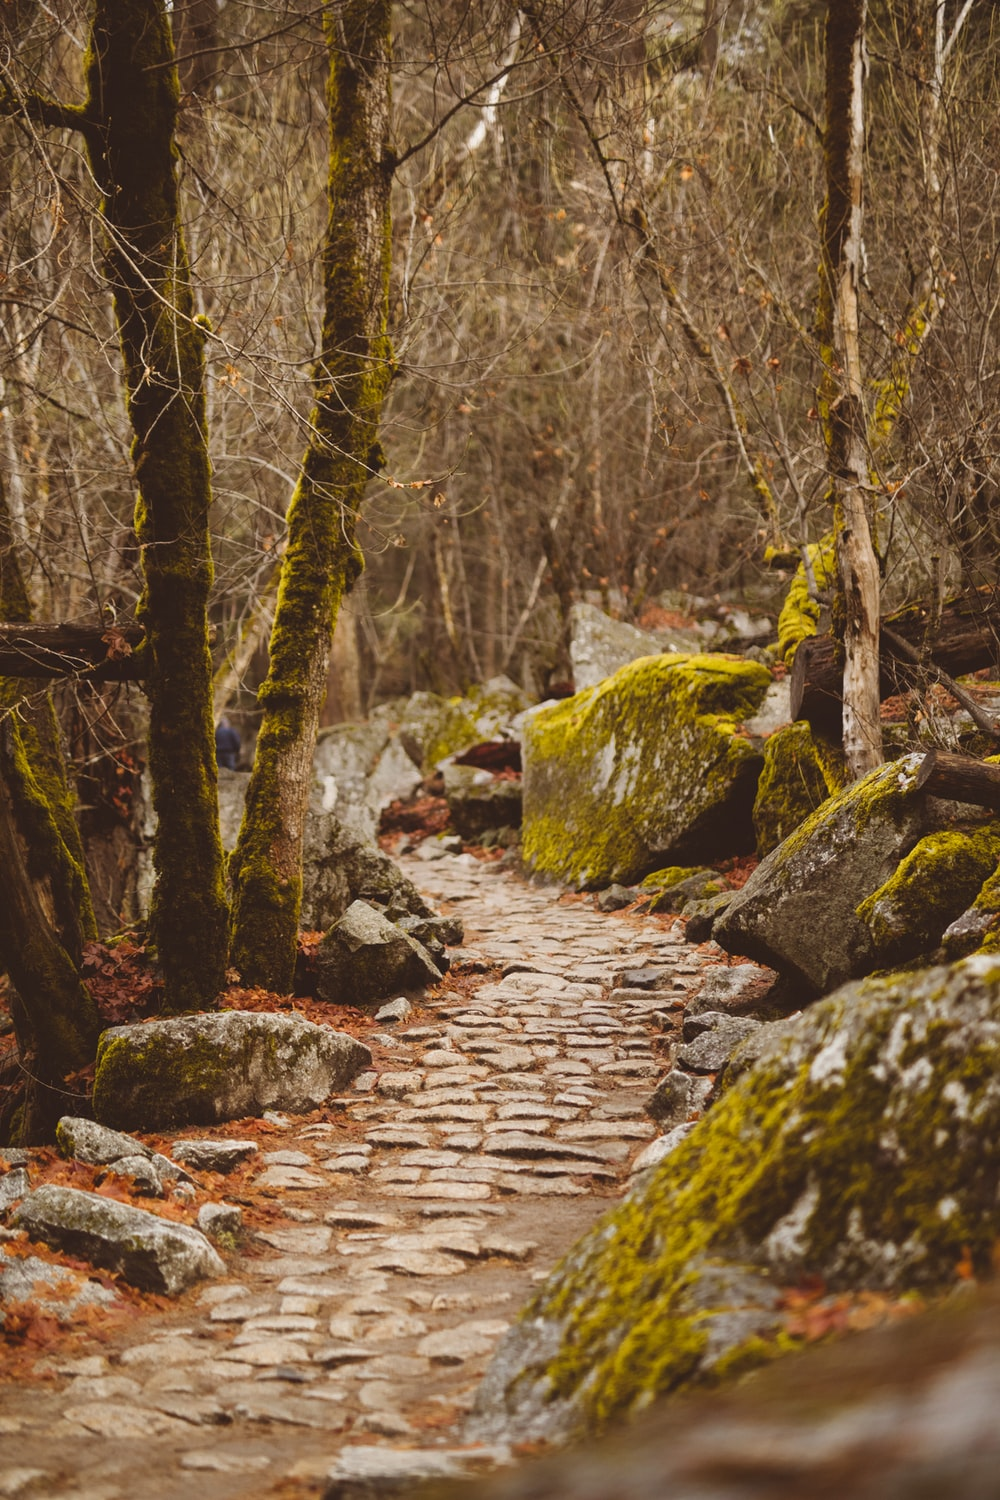 moss covered stones and trees